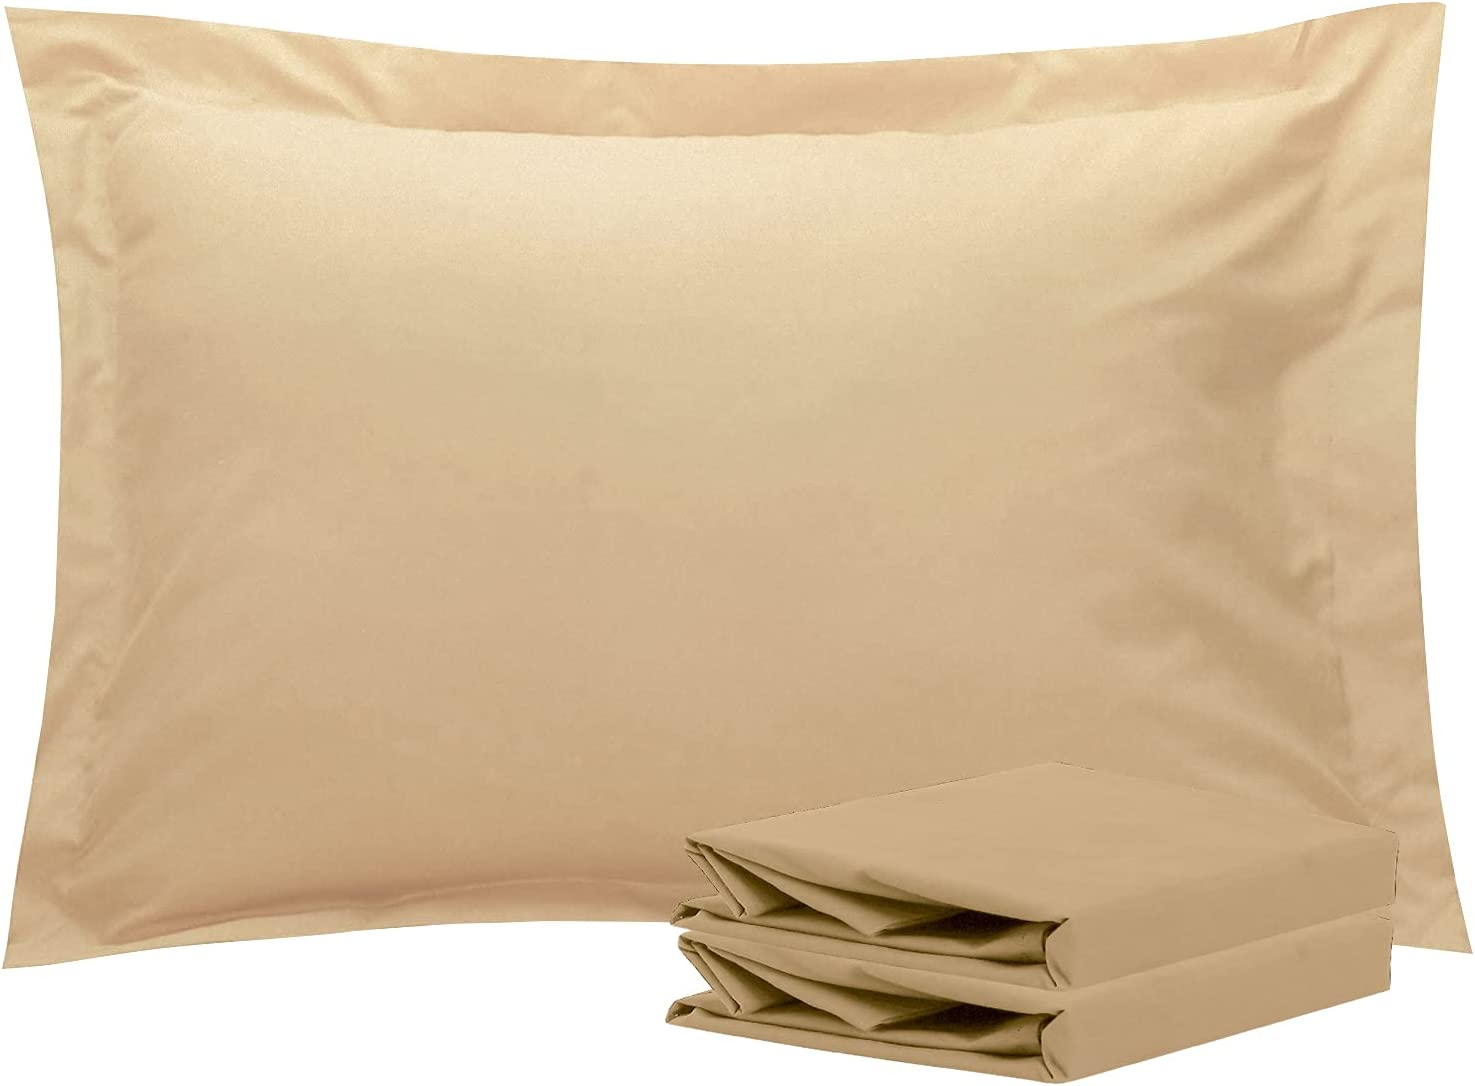 NTBAY Standard Pillow Shams, Set of 2, 100% Brushed Microfiber, Soft and Cozy, Wrinkle, Fade, Stain Resistant (Standard, Khaki)